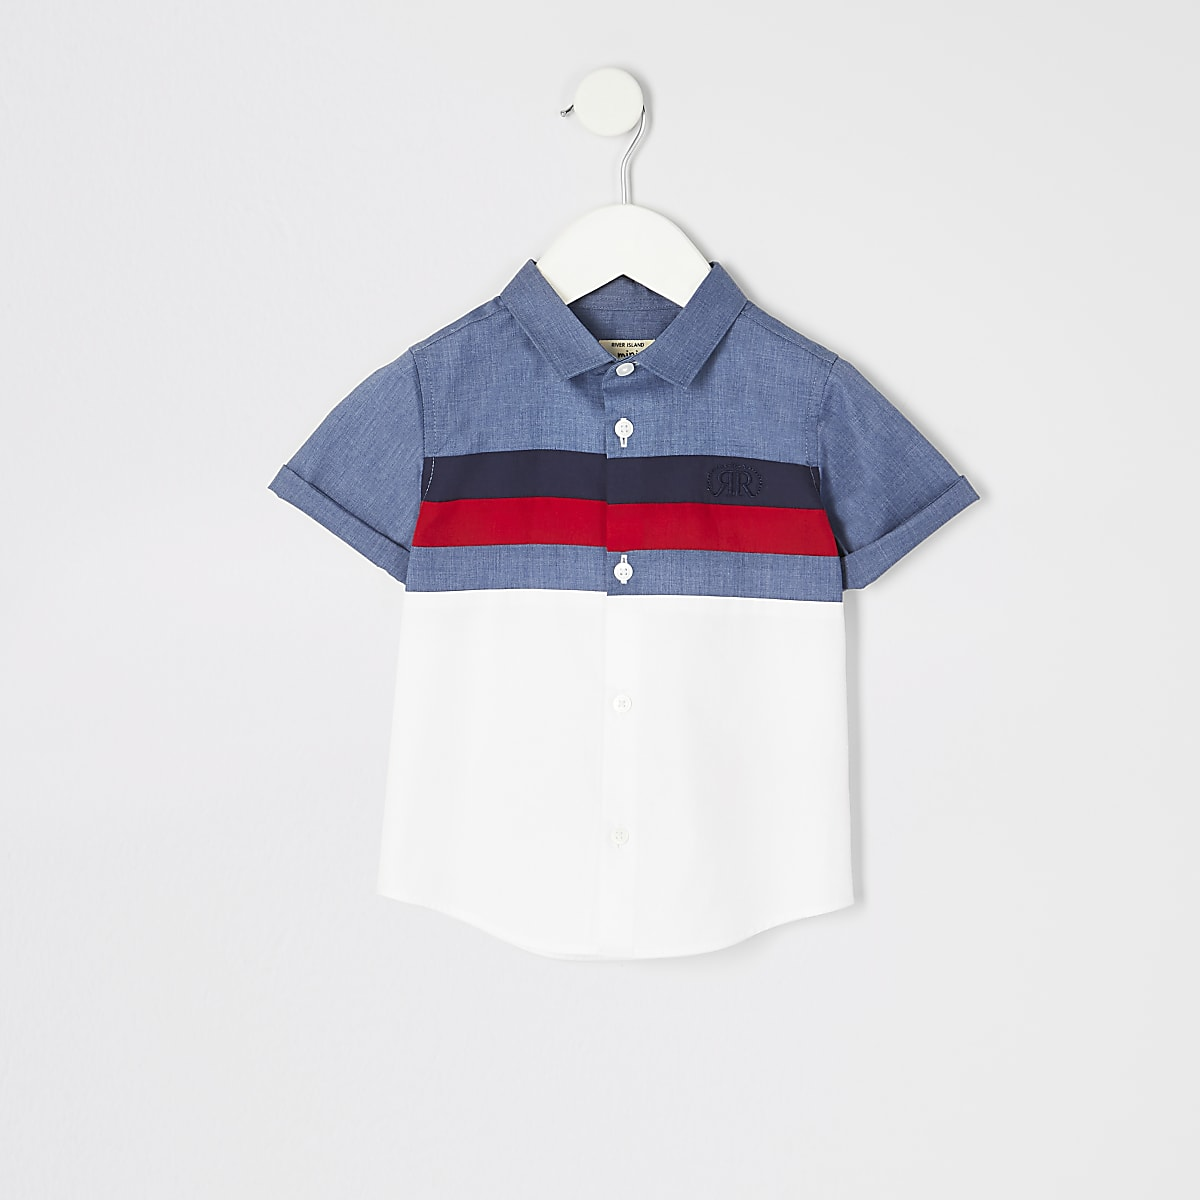 Mini boys navy block shirt